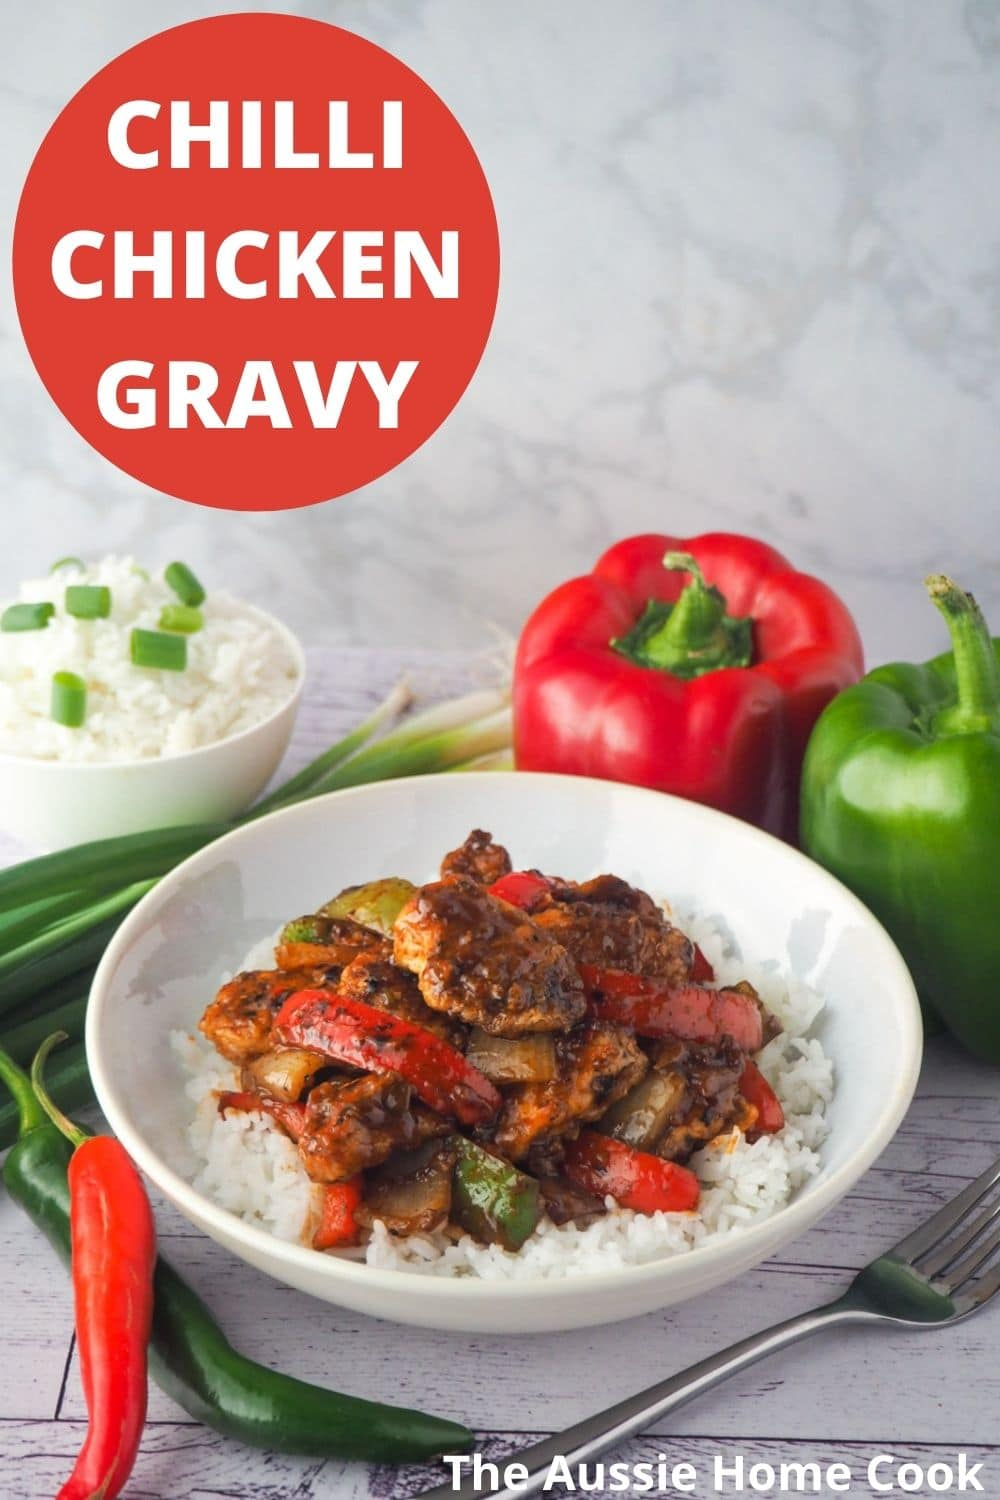 Bowl of chicken on rice with fork and capsicums, spring onions and chilli on the side with text overlay, chilli chicken gravy and The Aussie Home Cook.